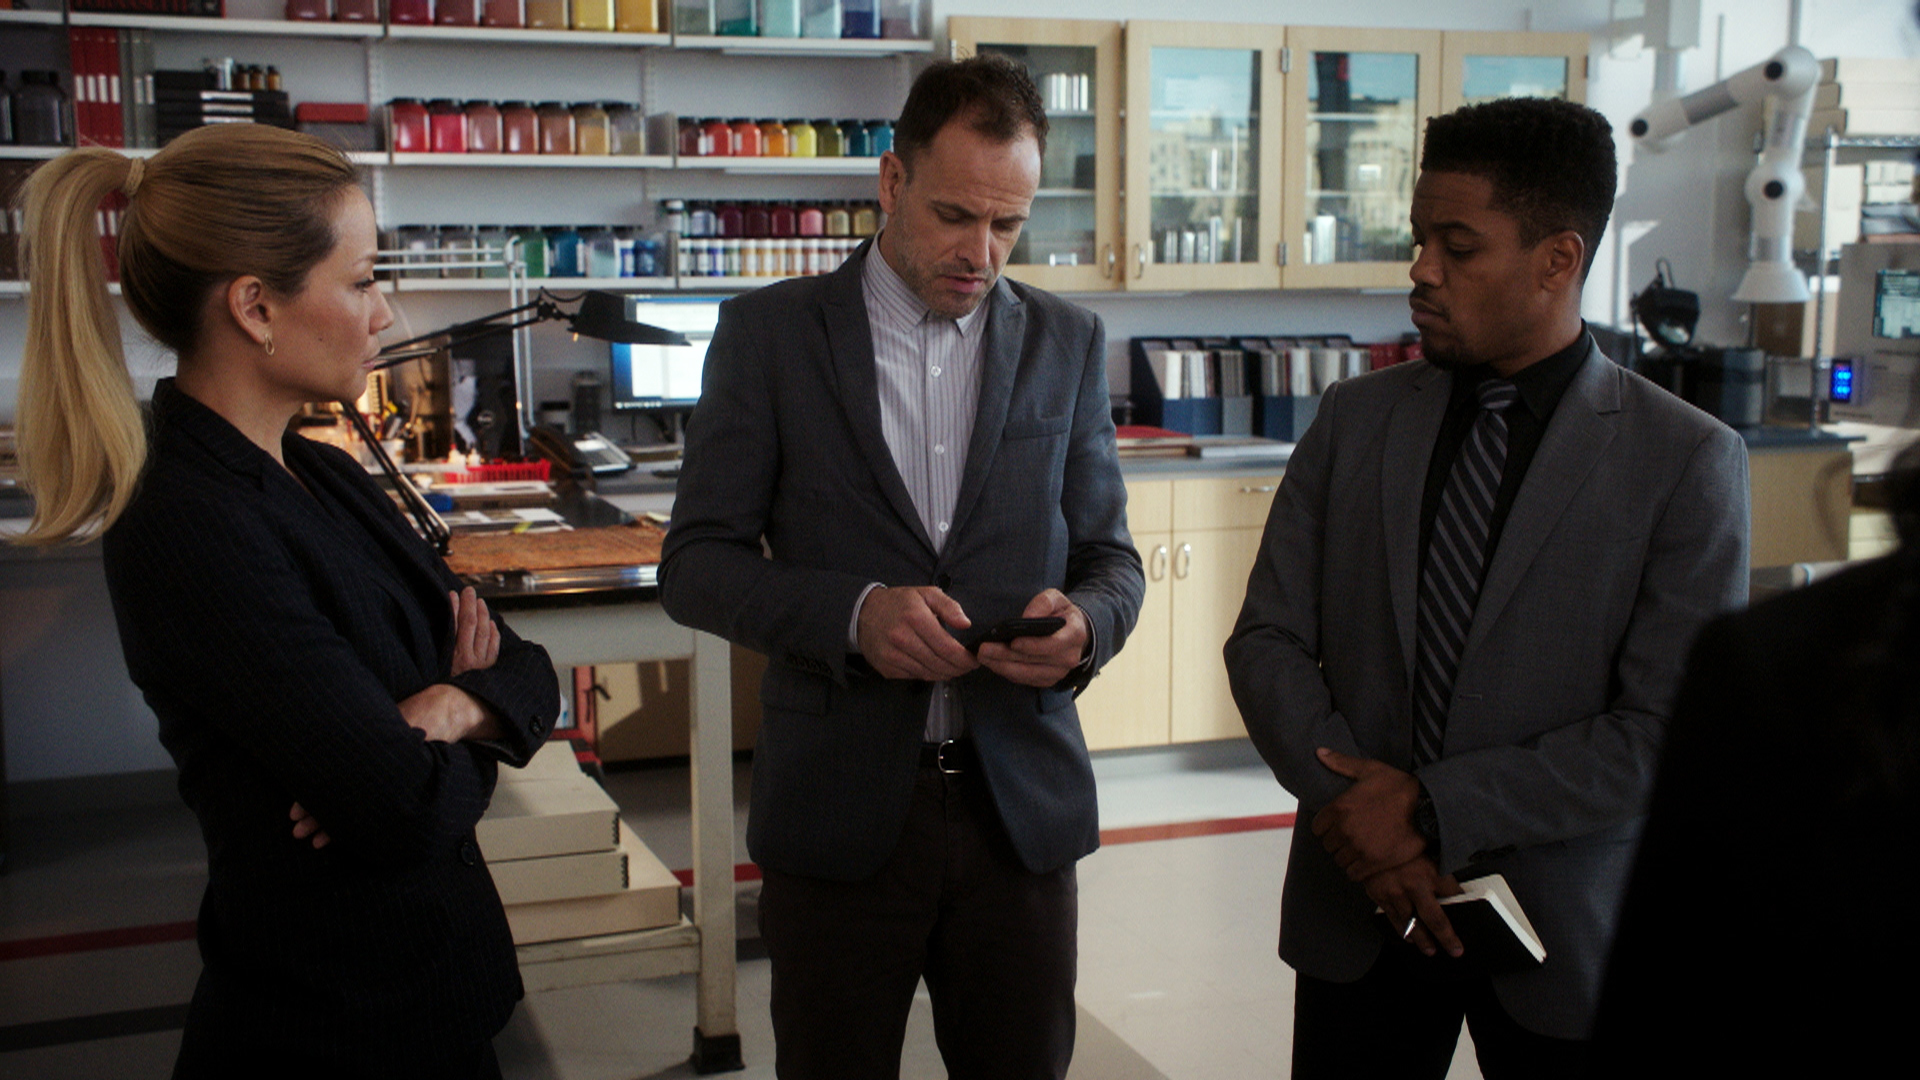 Watch Elementary Season 7 Episode 7: From Russia with Drugs - Full show on  CBS All Access